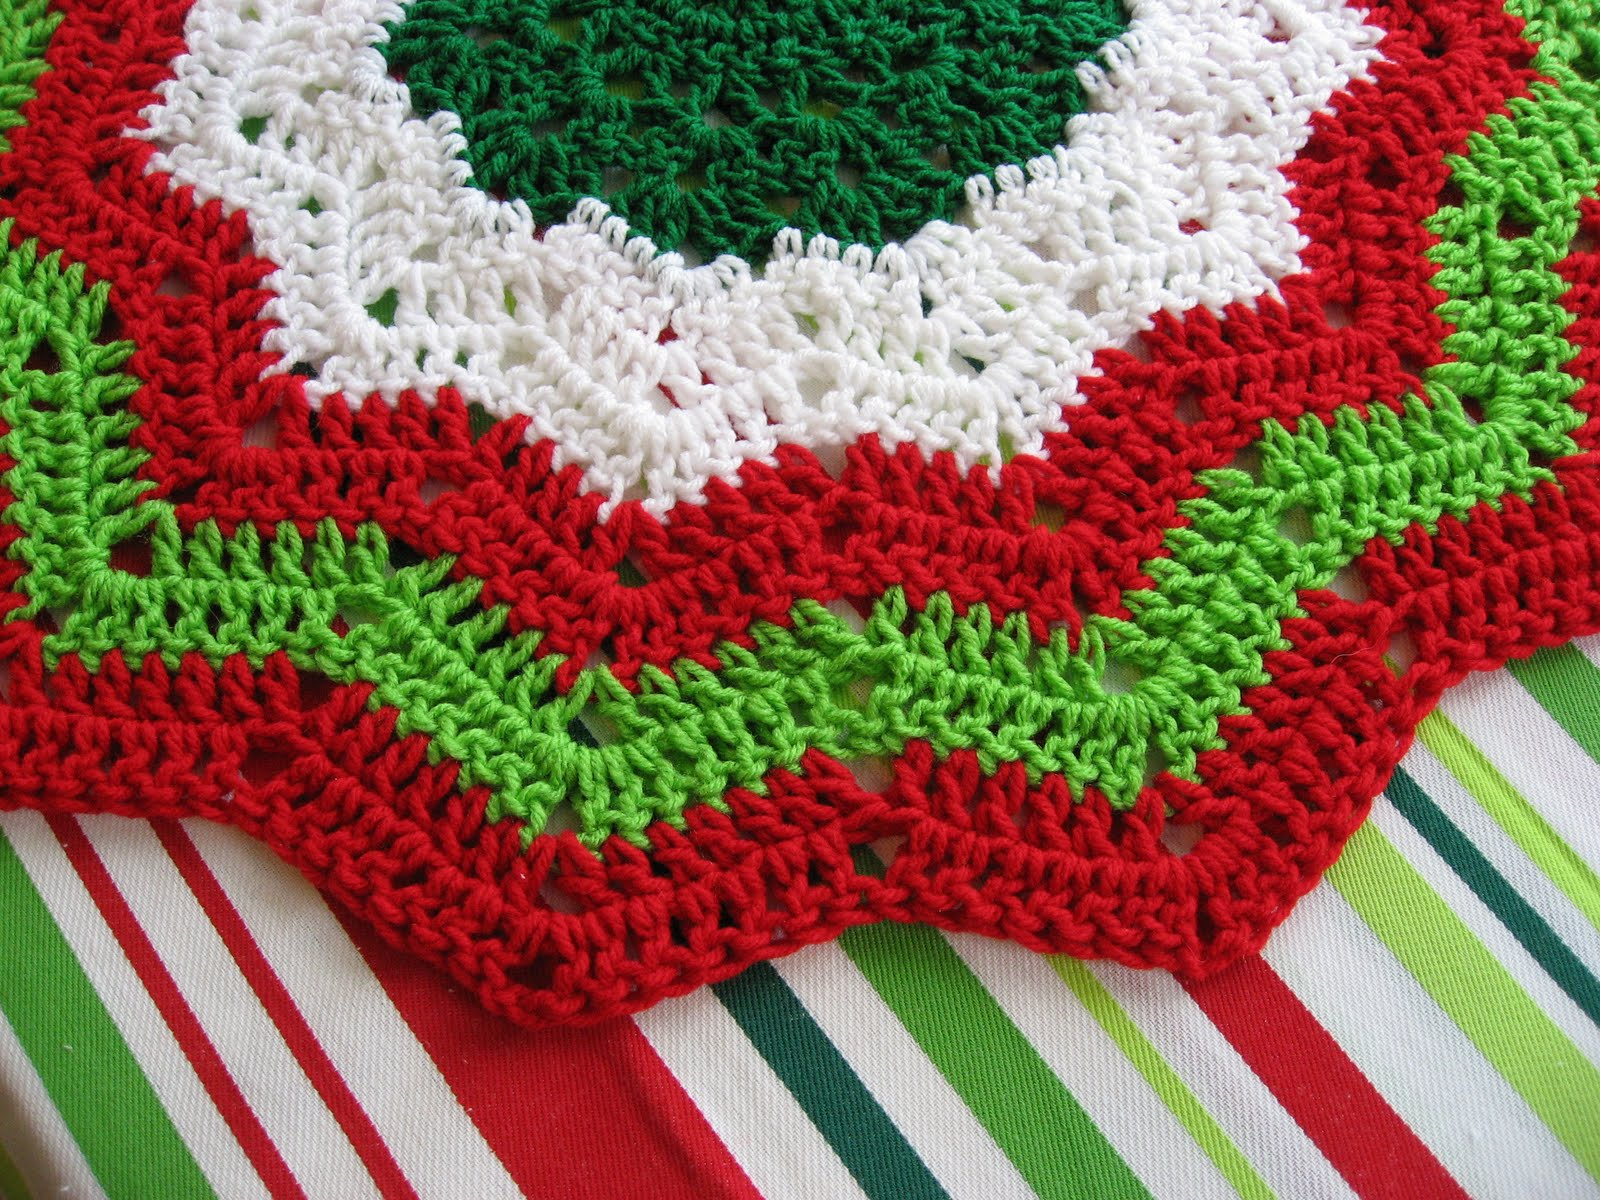 Christmas Tree Skirt Knitting Pattern : CHRISTMAS CROCHET PATTERN RIPPLE SKIRT TREE Crochet Patterns